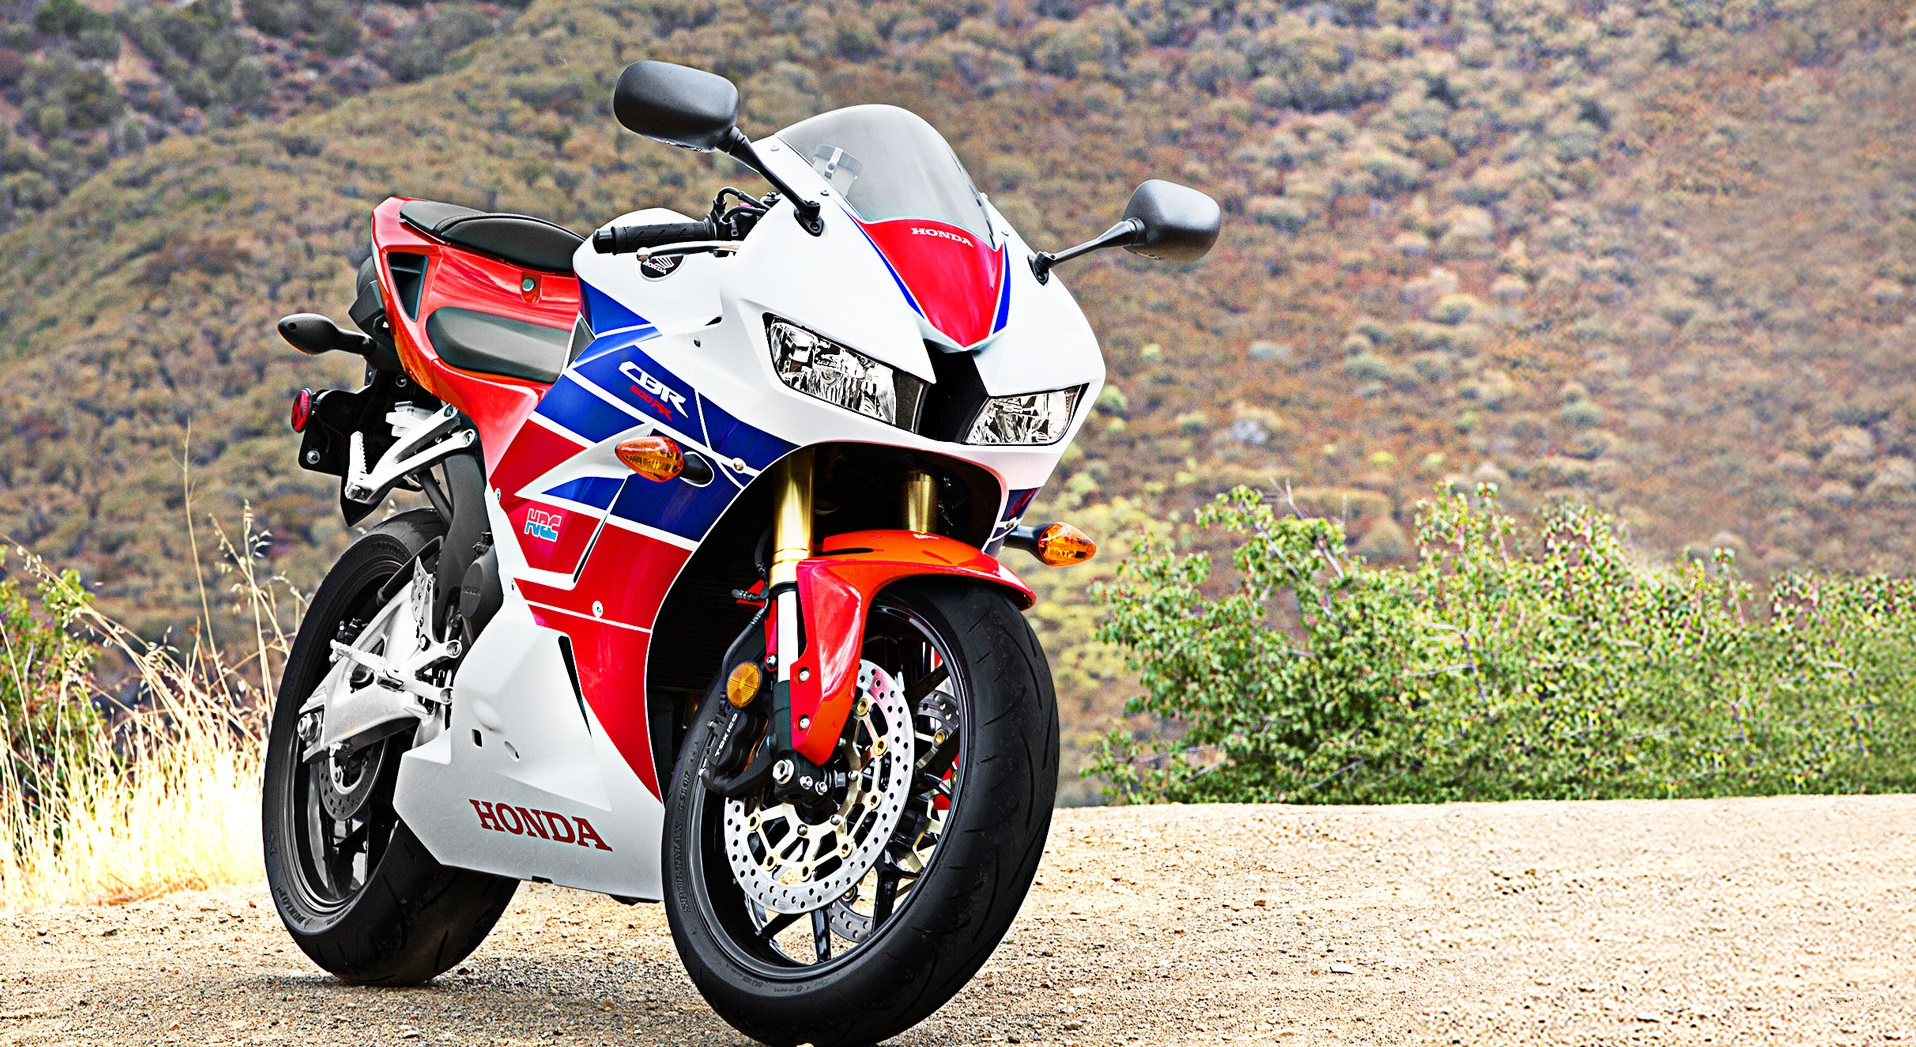 2013 Honda CBR600RR- First Ride Review- Photos | Cycle World